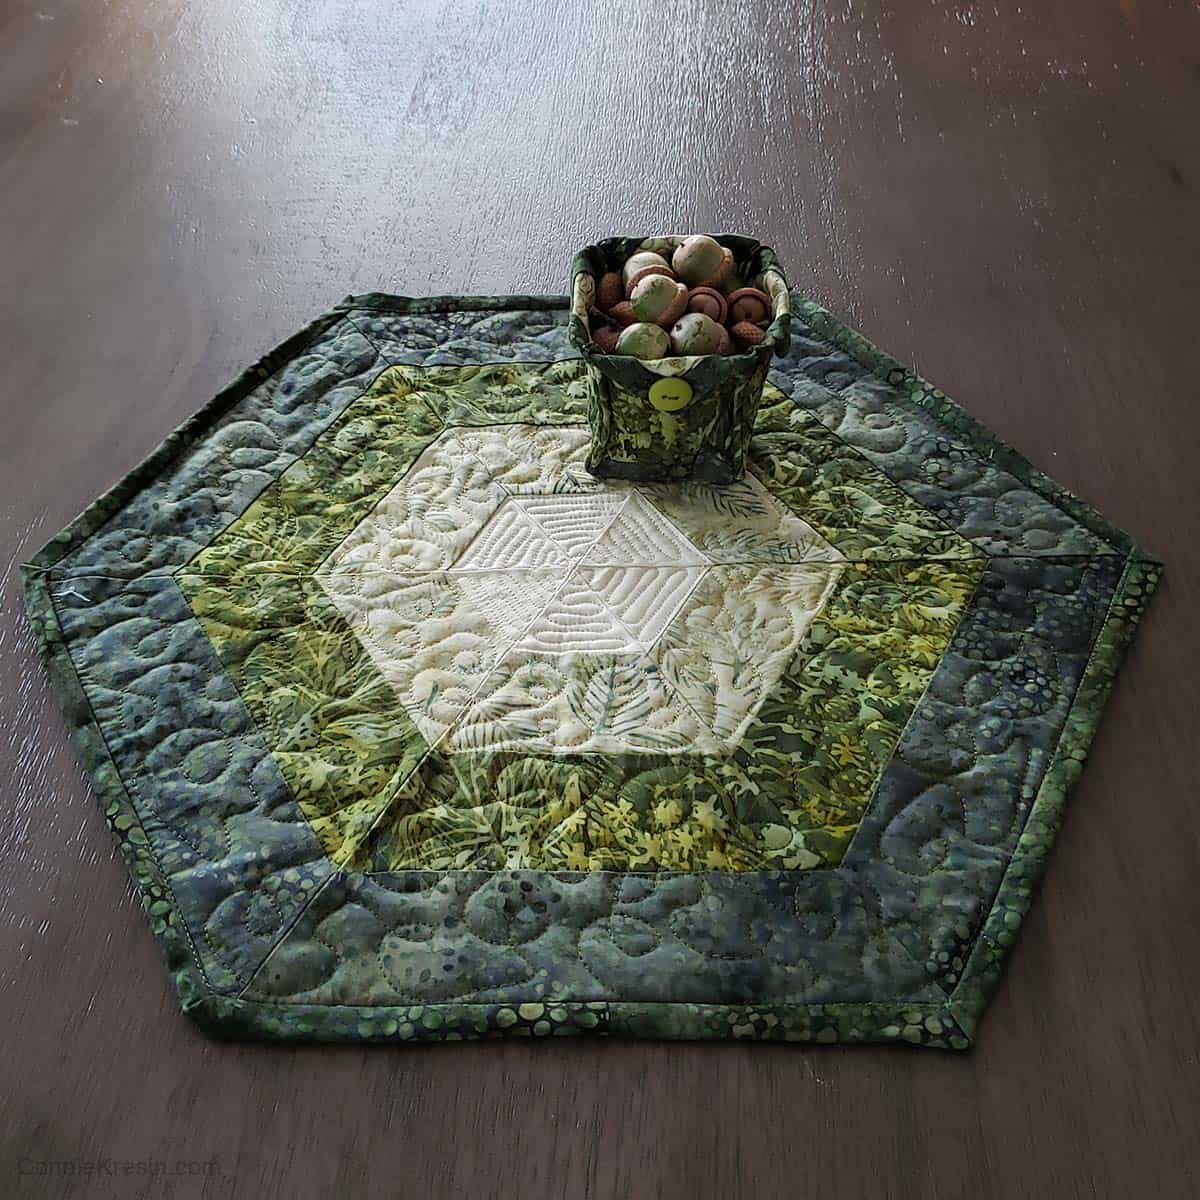 Green batik table topper and small fabric basket